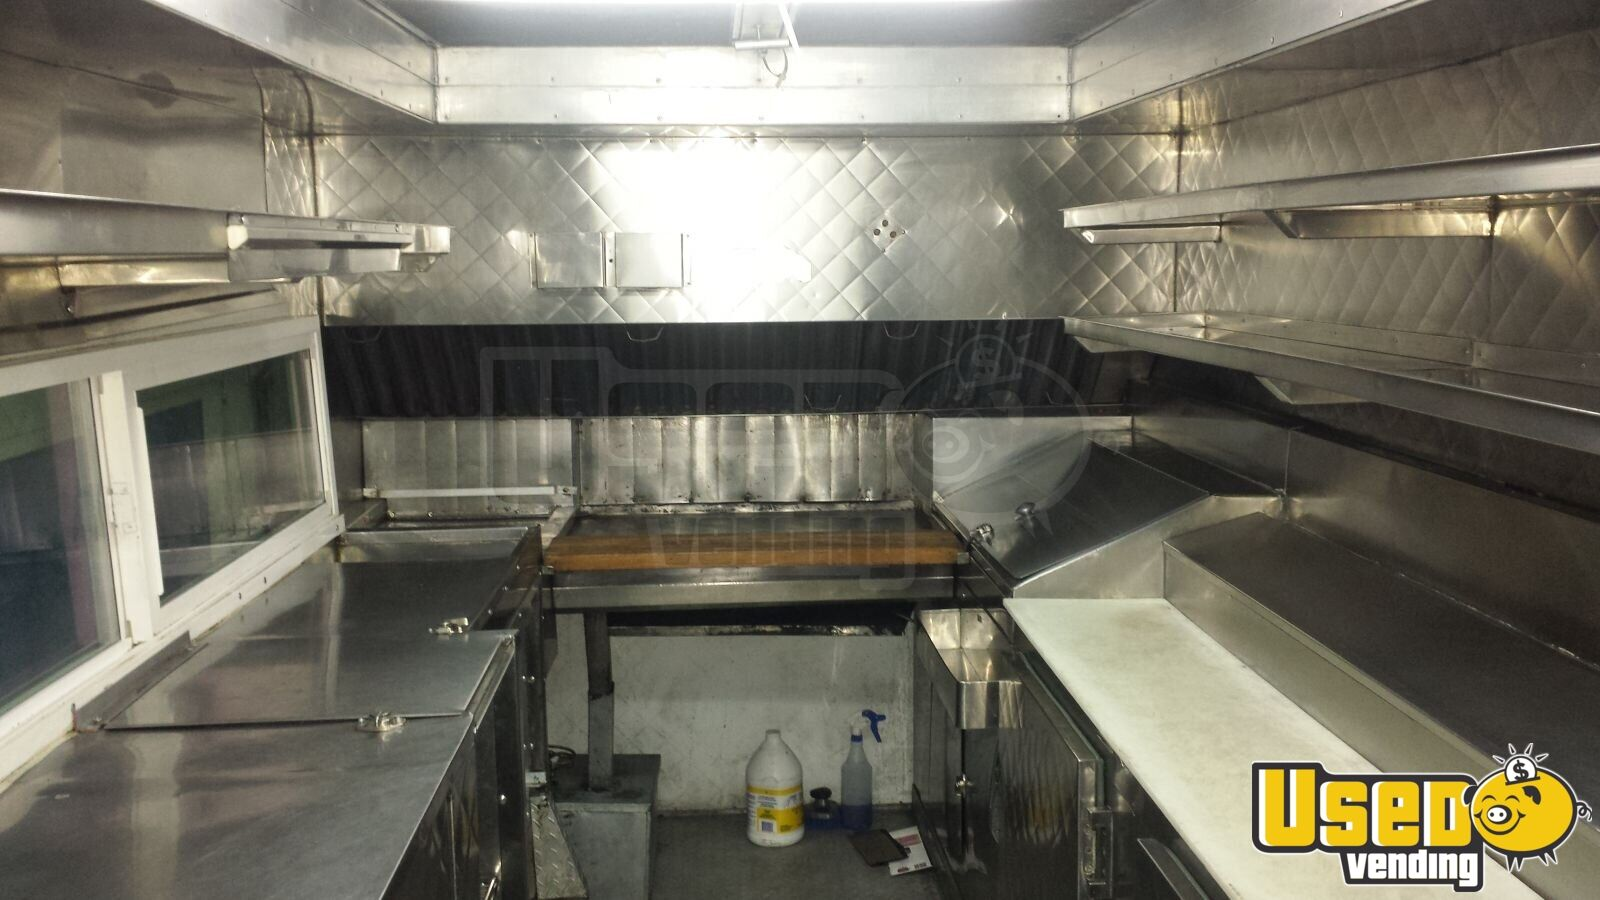 Chevrolet p30 lunch serving truck mobile kitchen for for Table sae j 300 th 1999